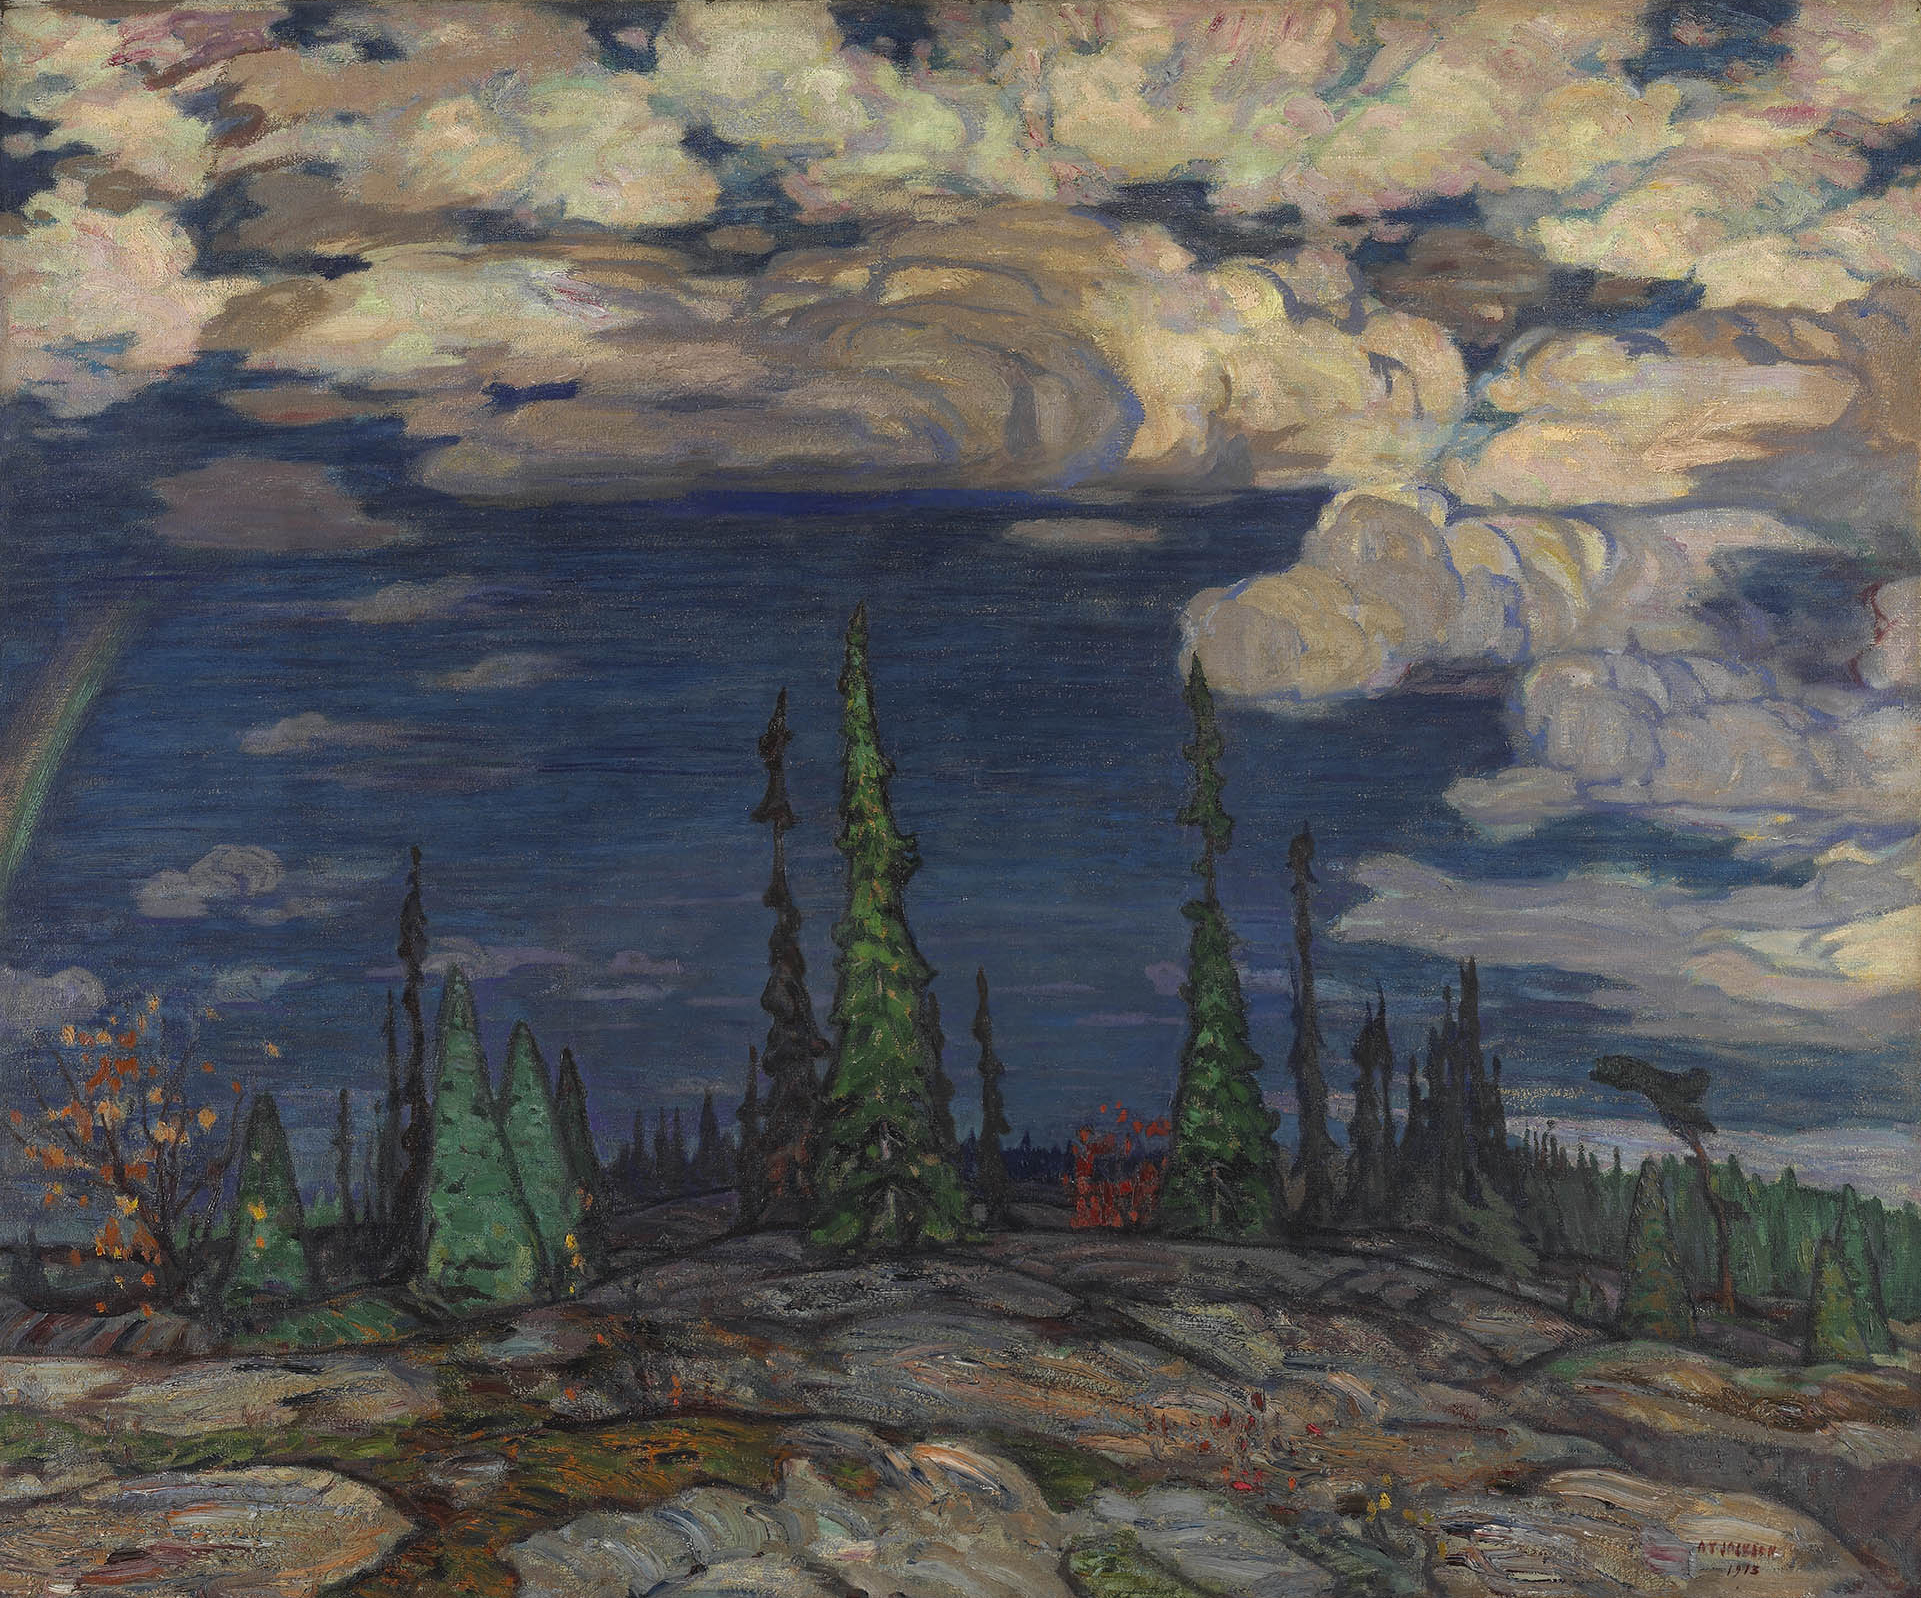 This painting shows a landscape with rocky ground. At the centre of the composition, tall green pines soar against a deep blue sky scattered with white clouds.